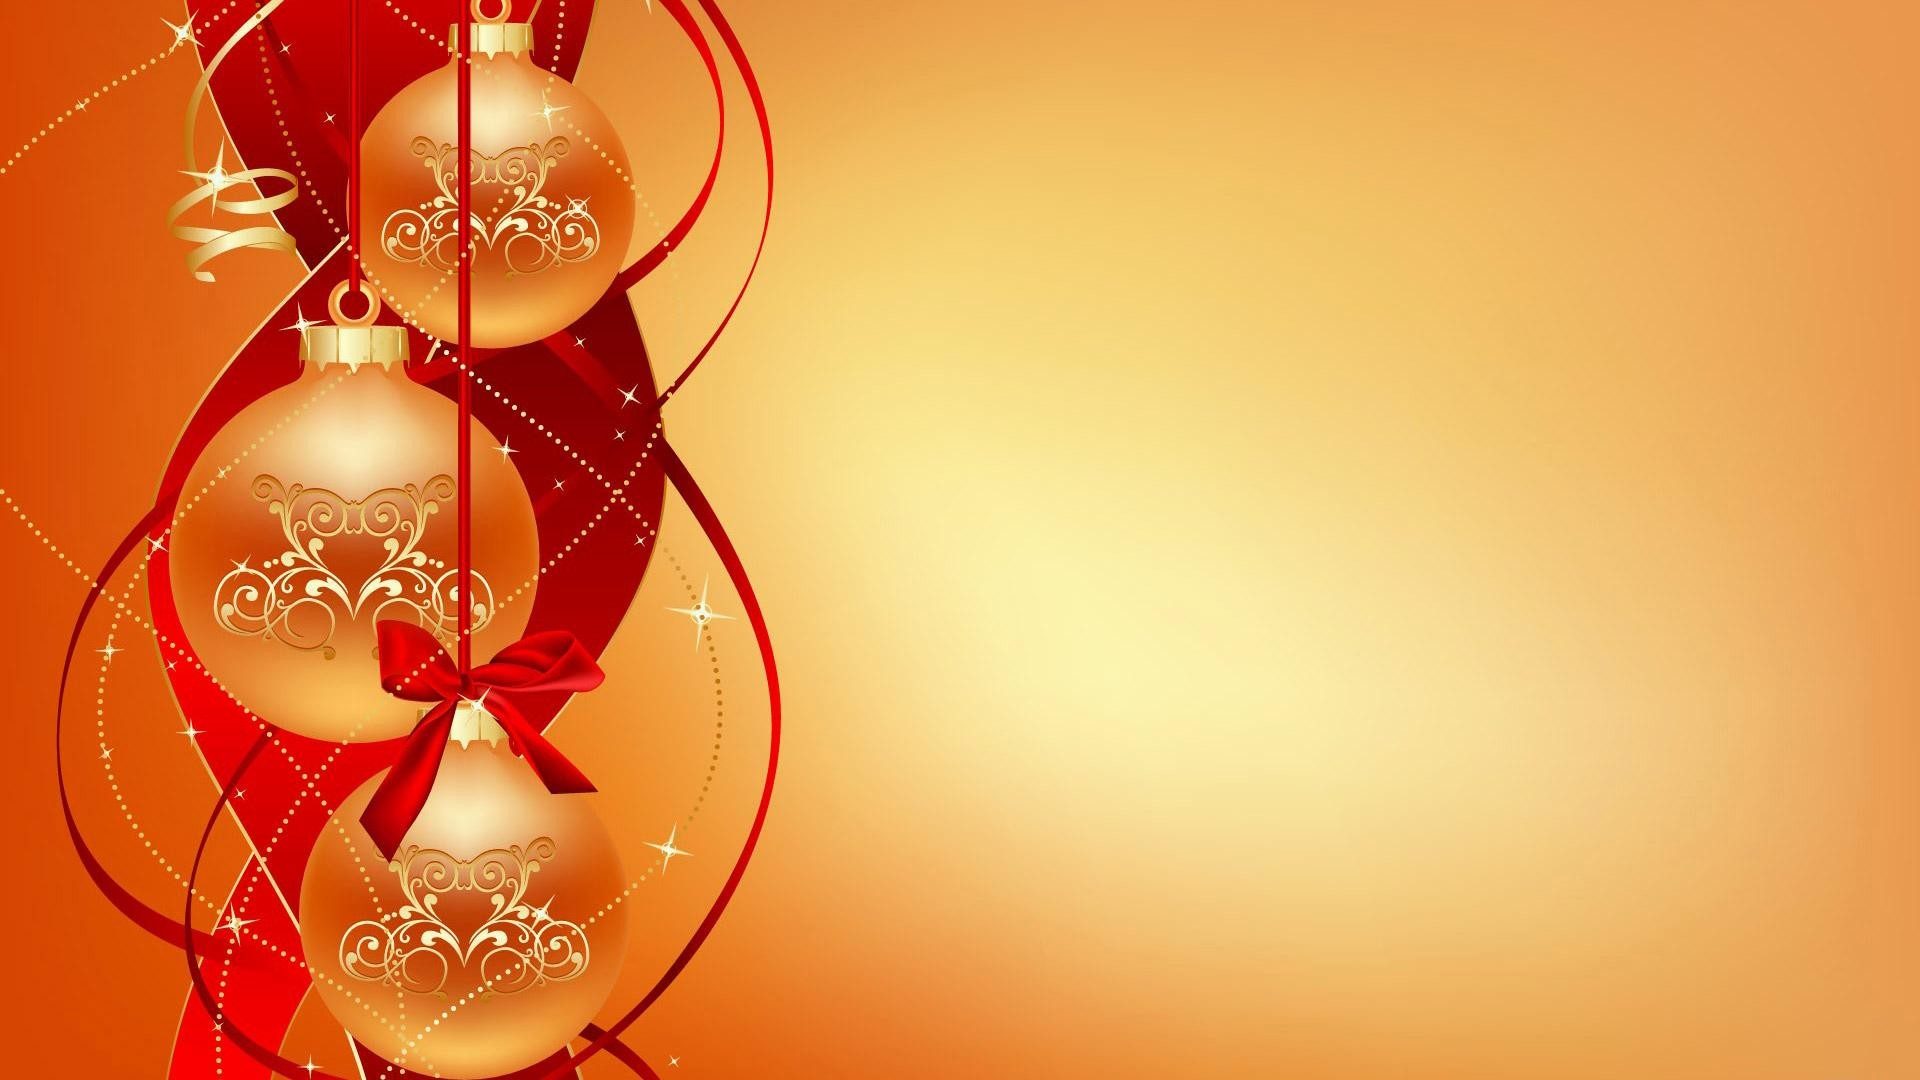 wallpaper.wiki-New-Year-Background-PIC-WPB0012536